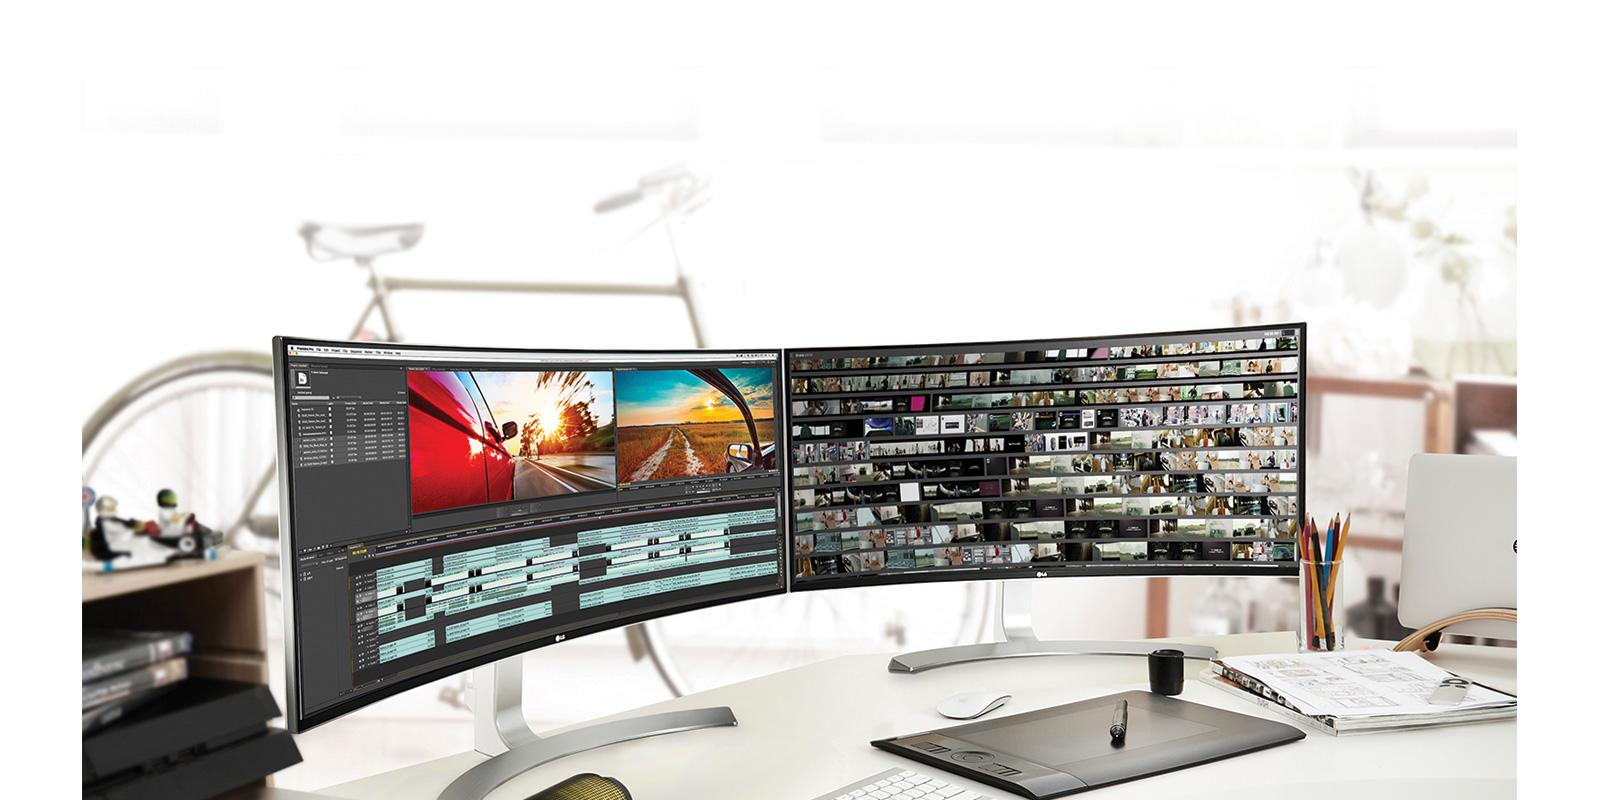 LG 34UC98 W Save Up To 10000 On The LG 34UC98 W Today